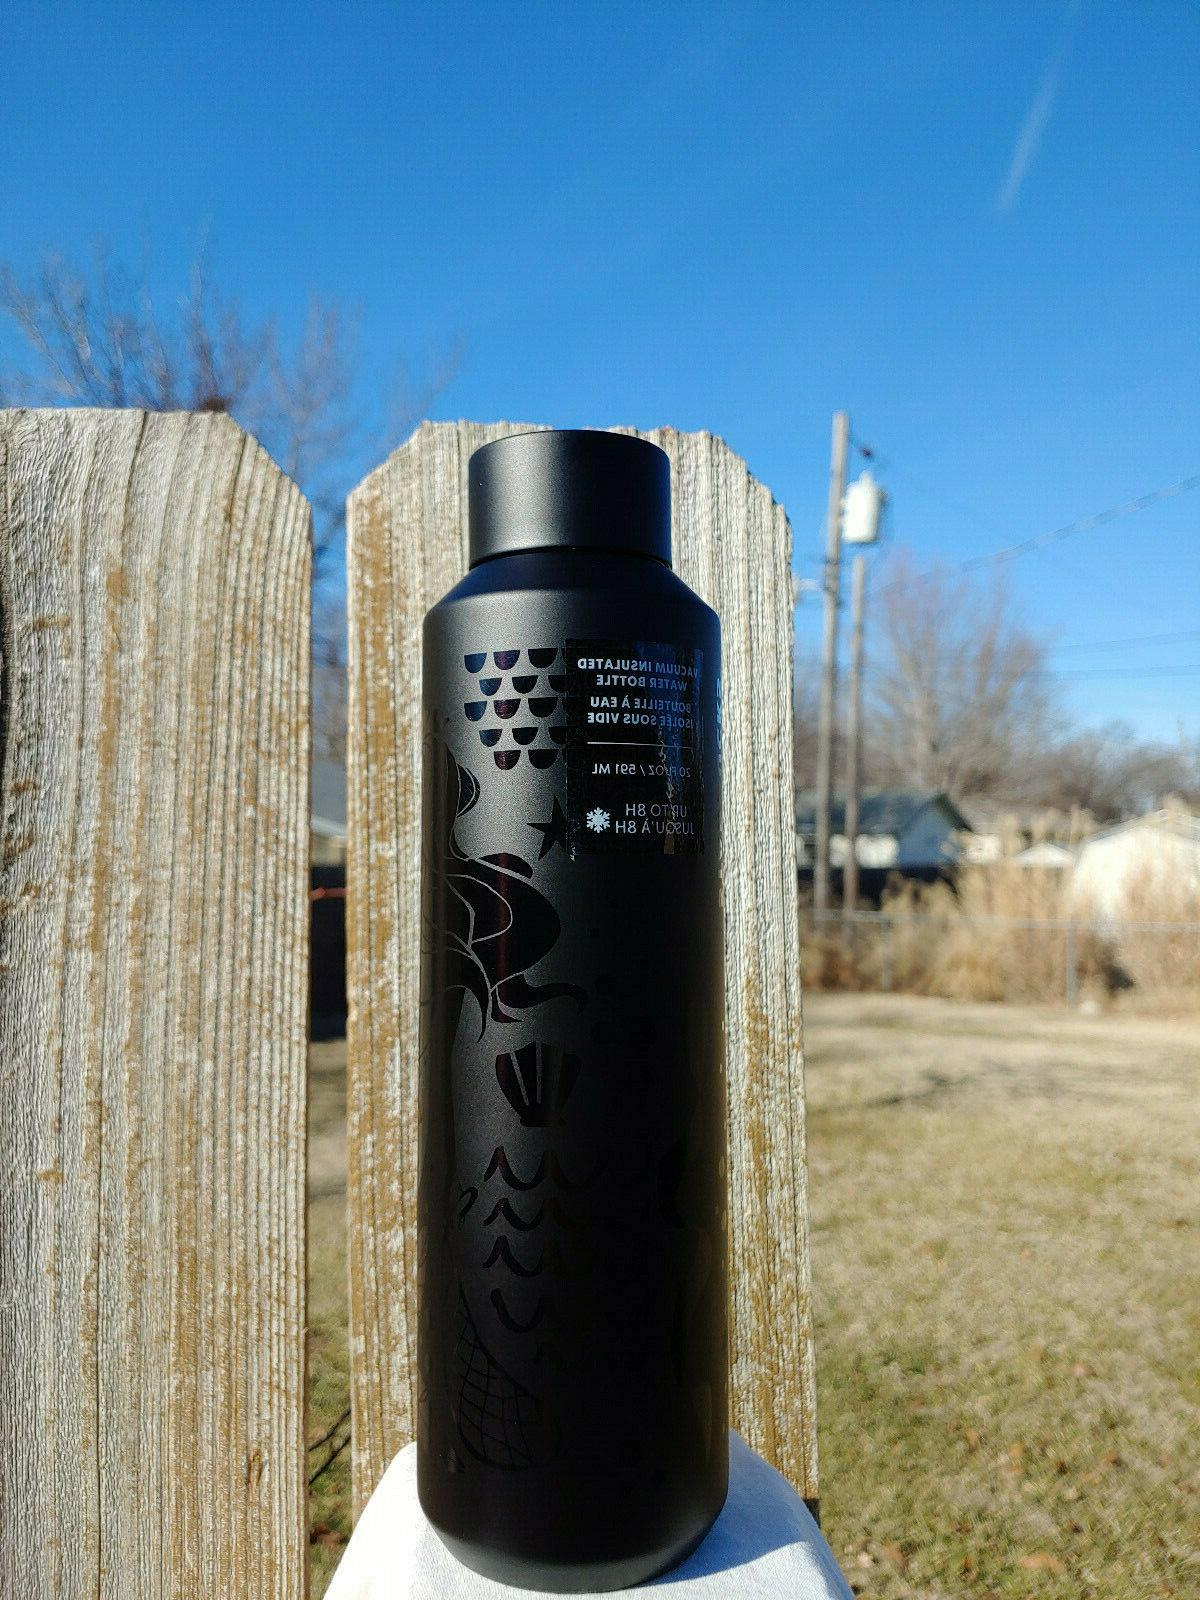 New 2020 Black WATER Insulated